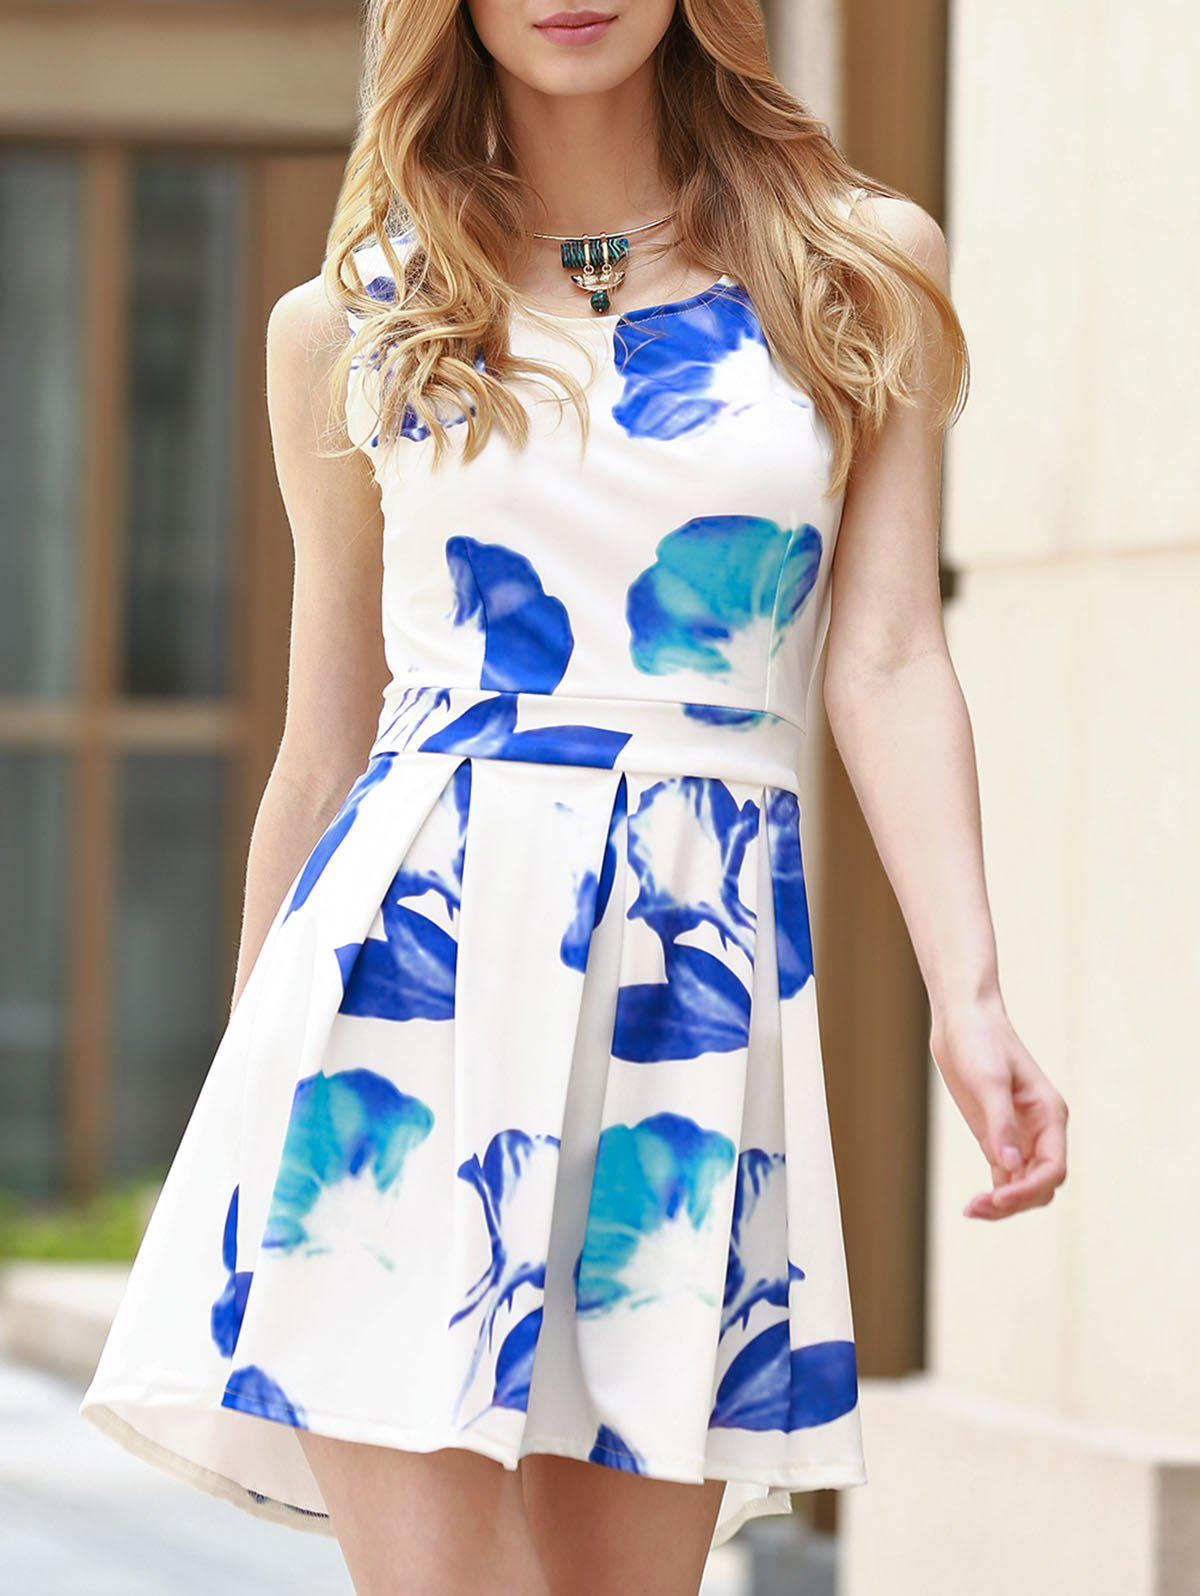 Trendy Sleeveless Scoop Neck Hollow Out Floral Print Women's Dress - BLUE/WHITE S